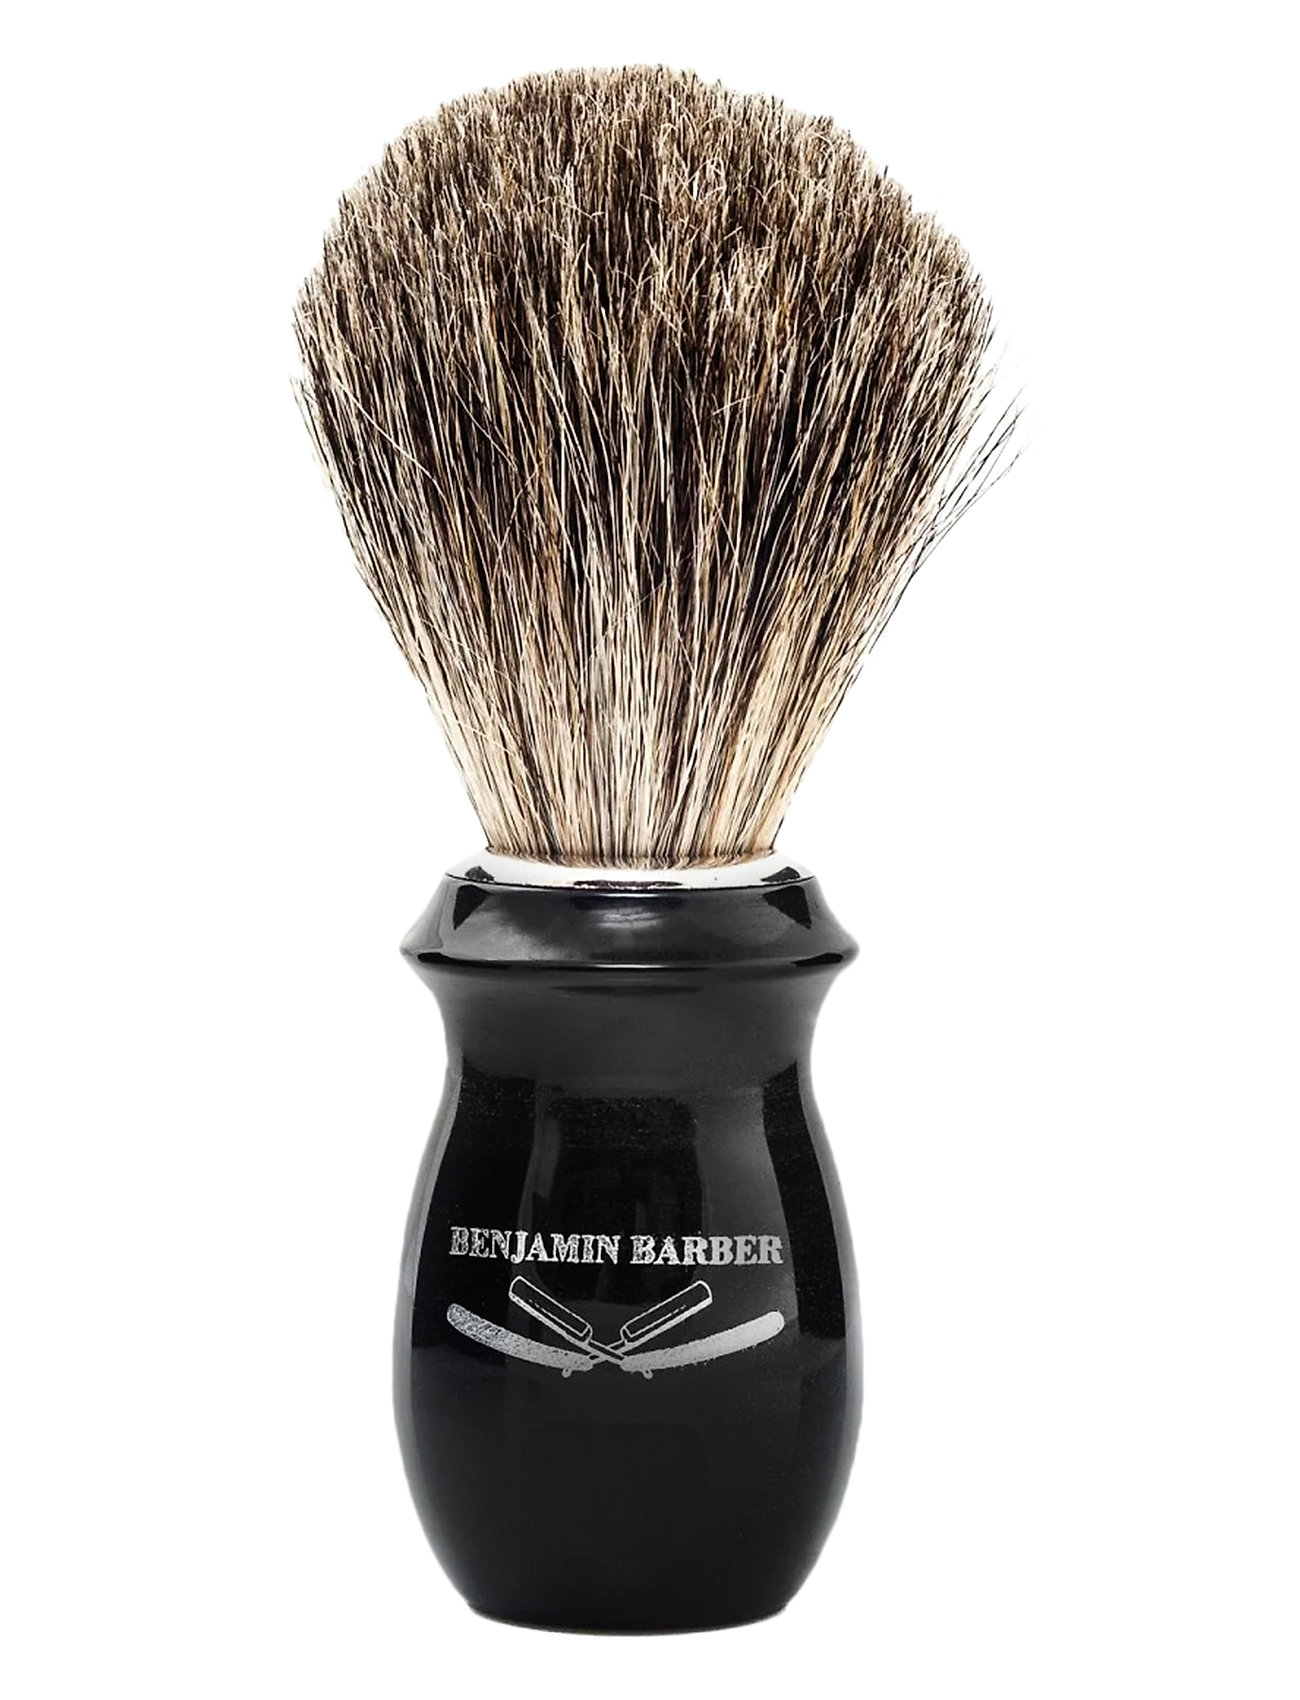 Benjamin Barber Benjamin Barber brush - EBONY